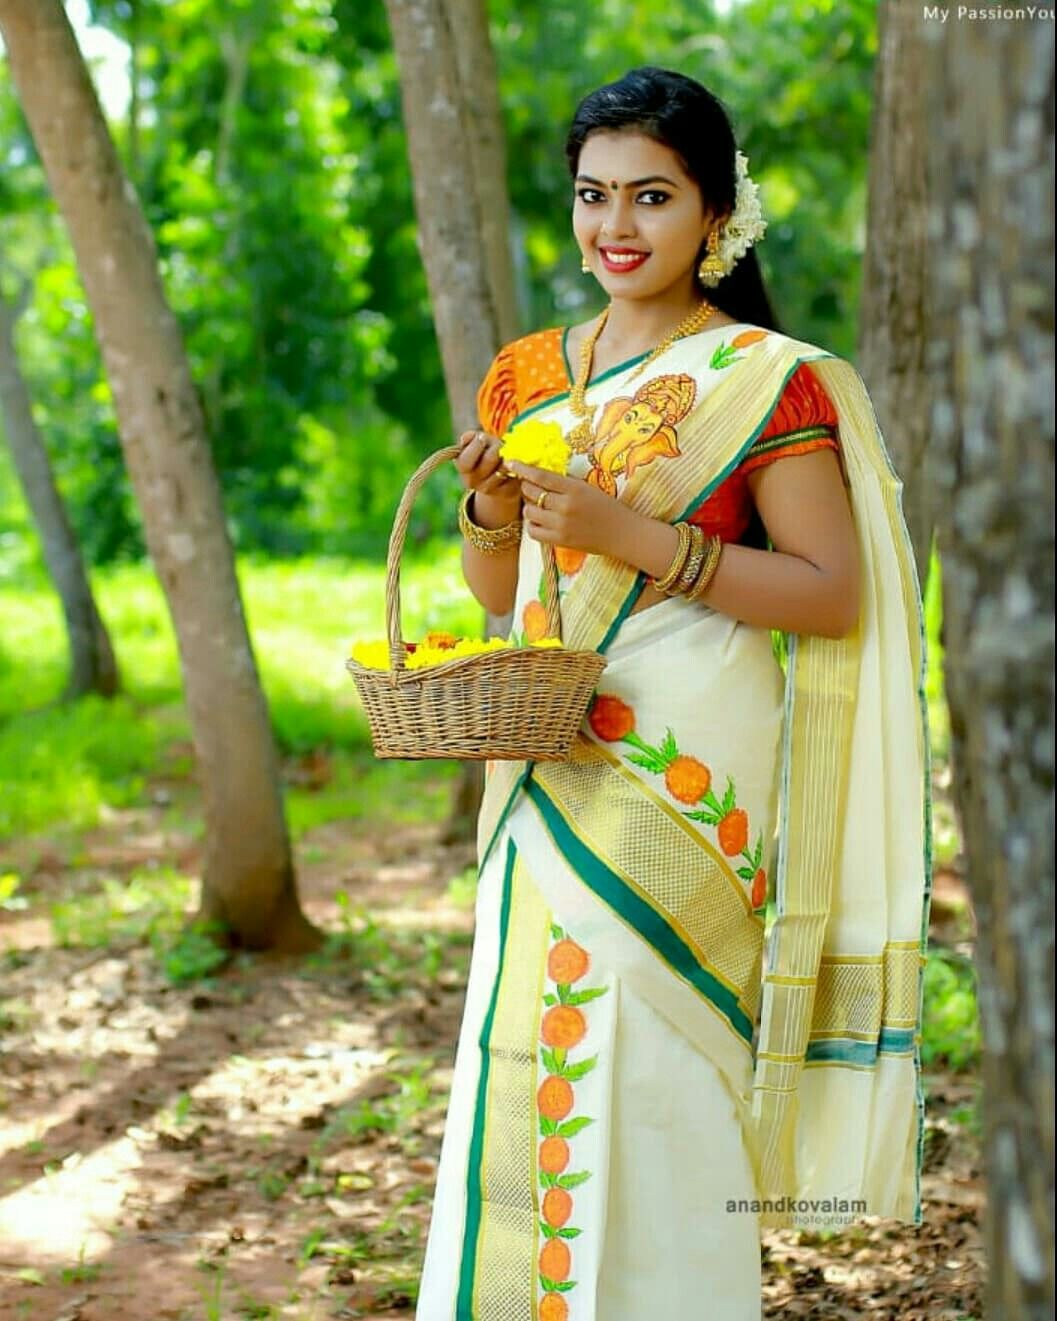 Kerala Wedding Hairstyles For Women: Culture Image By ArtCollector